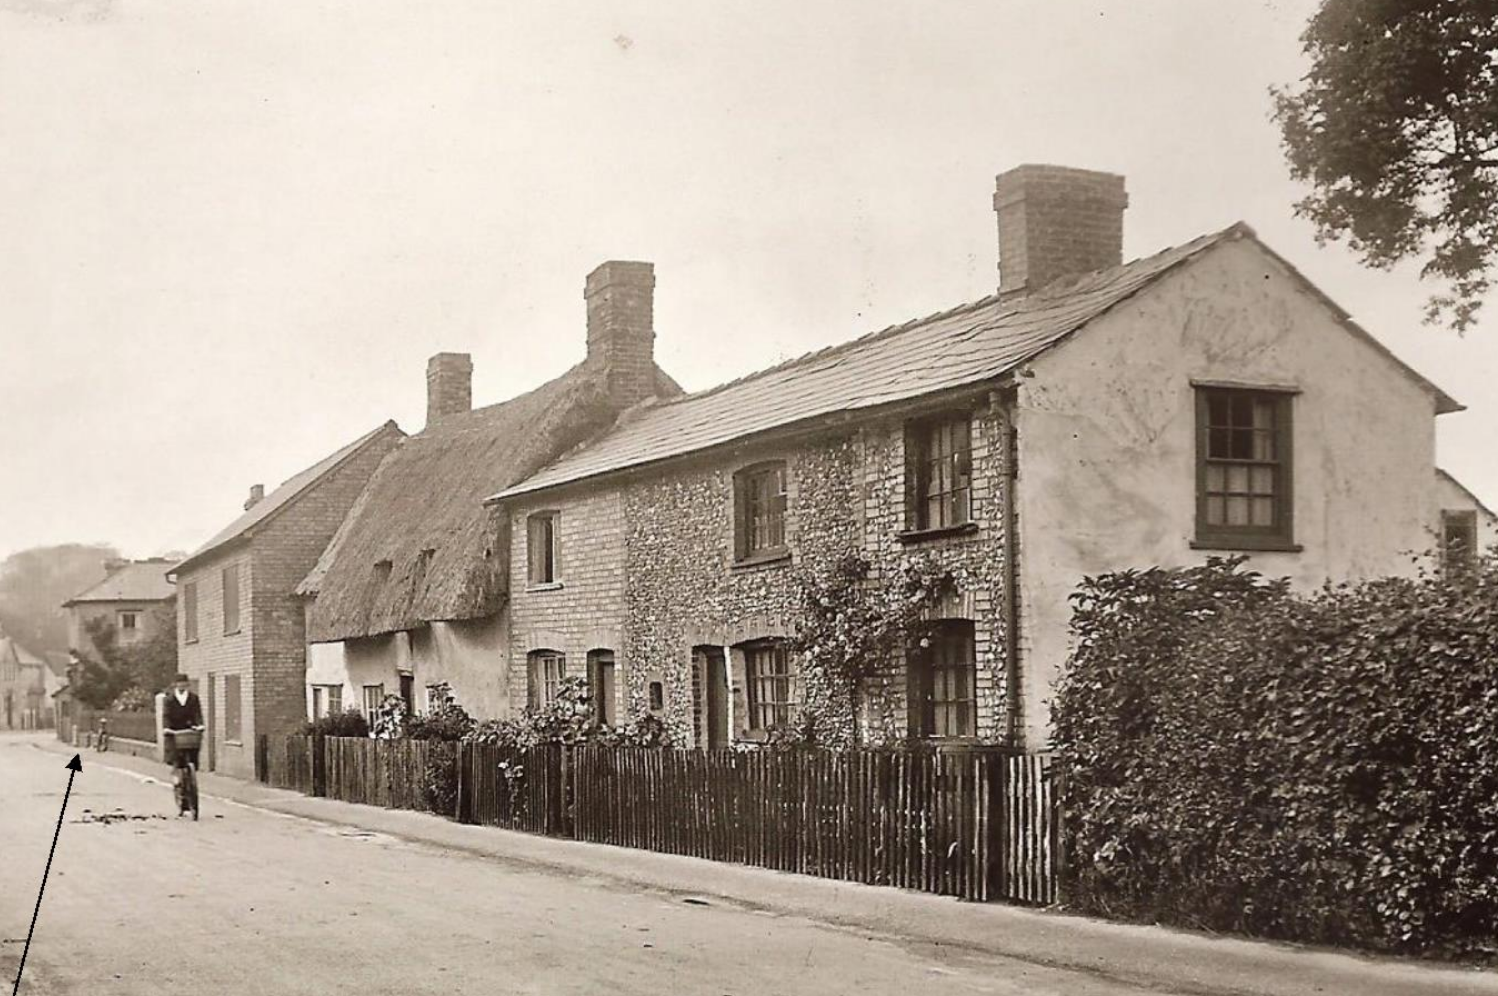 The Clock Shop is the last in the row of the house on this photo (see arrow). This photo was taken in 1931.